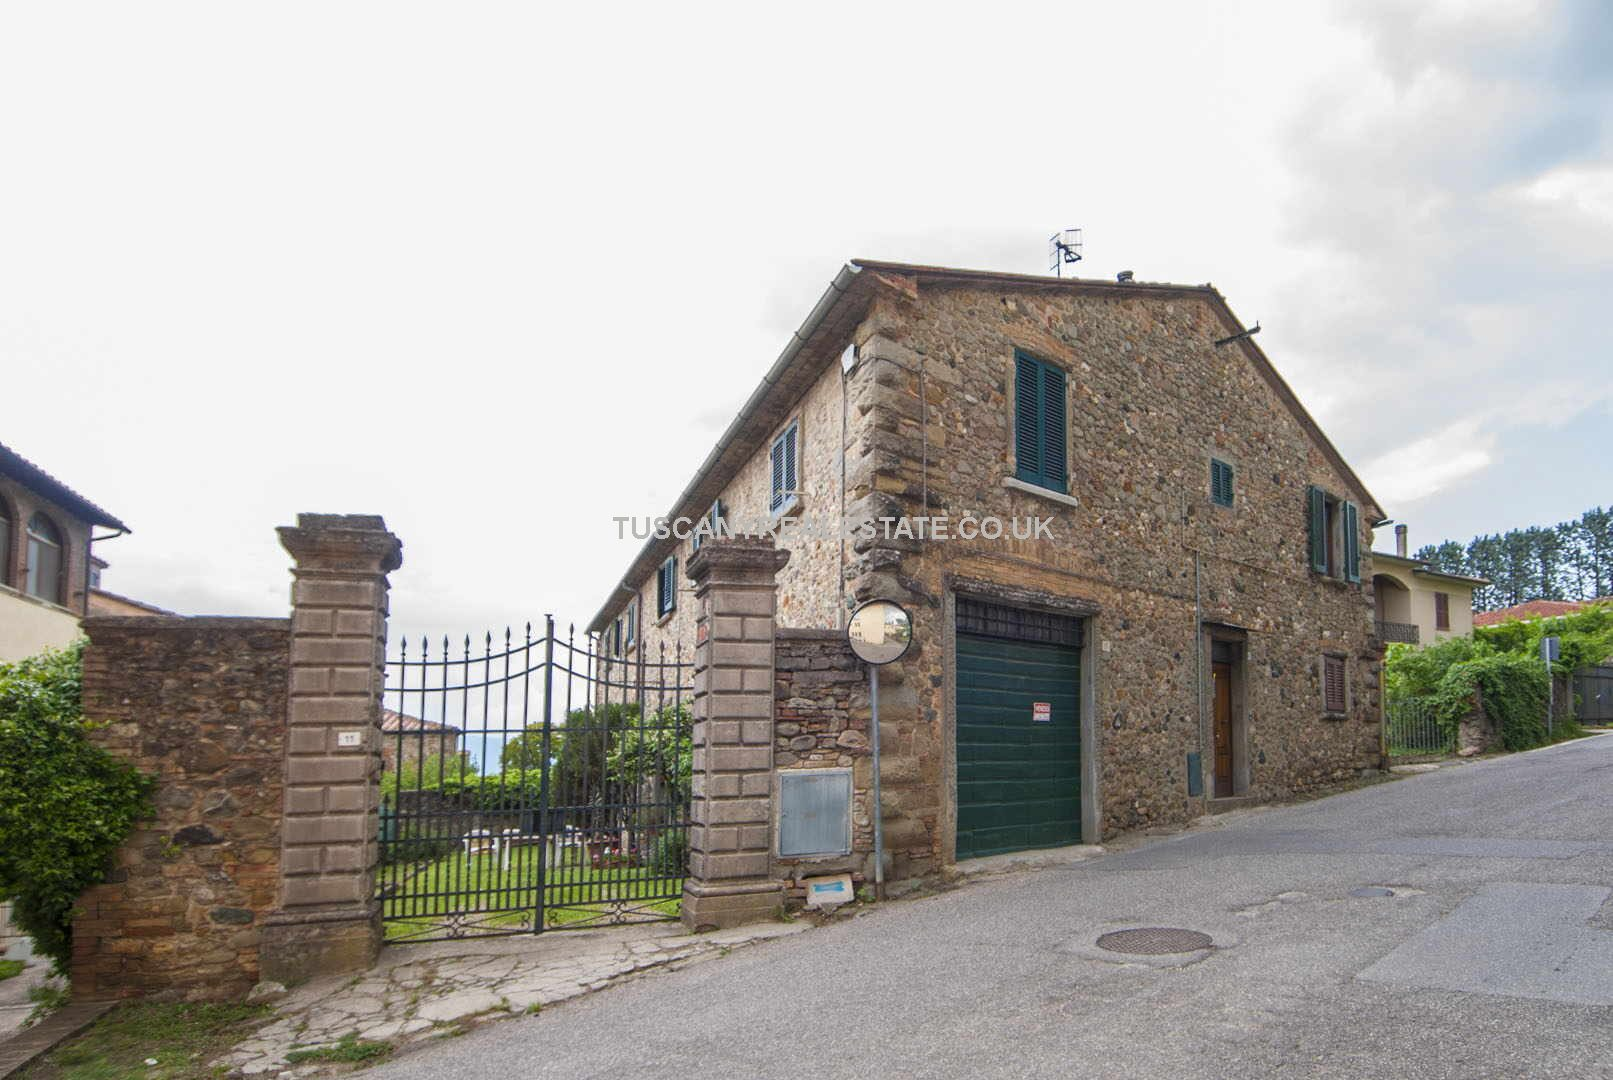 Tuscany Italy apartment for sale located just outside the historic centre of Anghiari